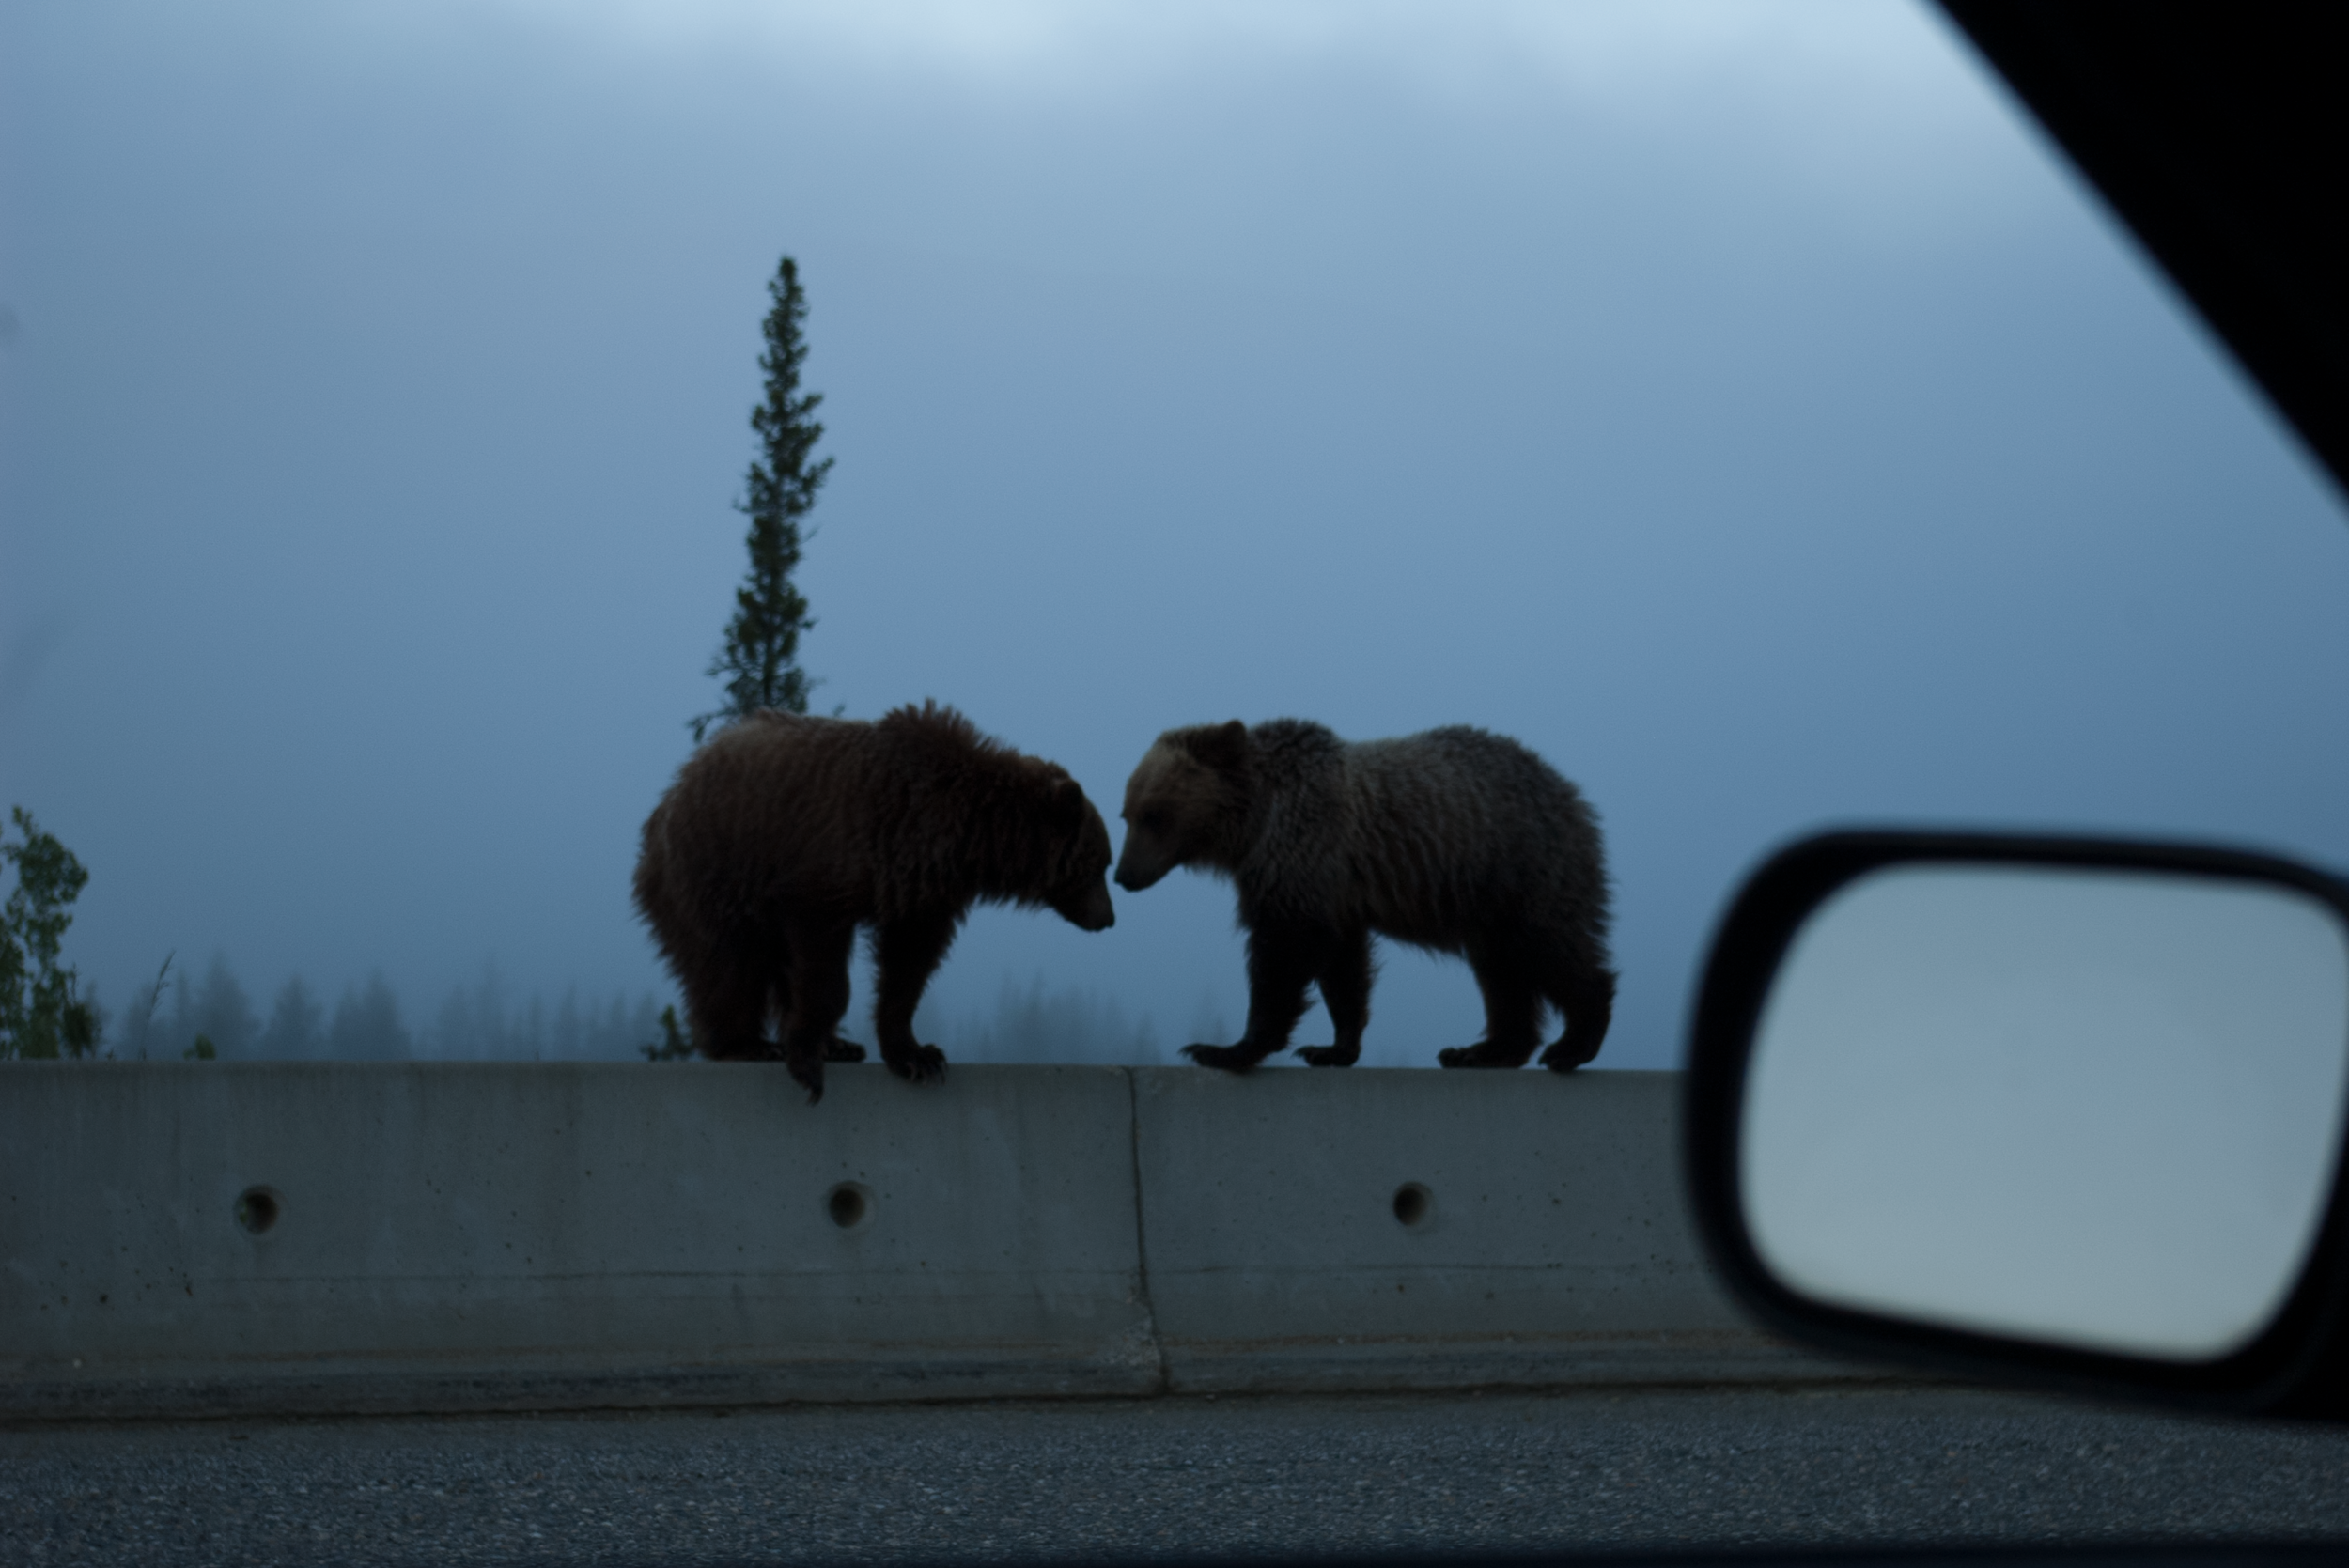 And some bears . . .